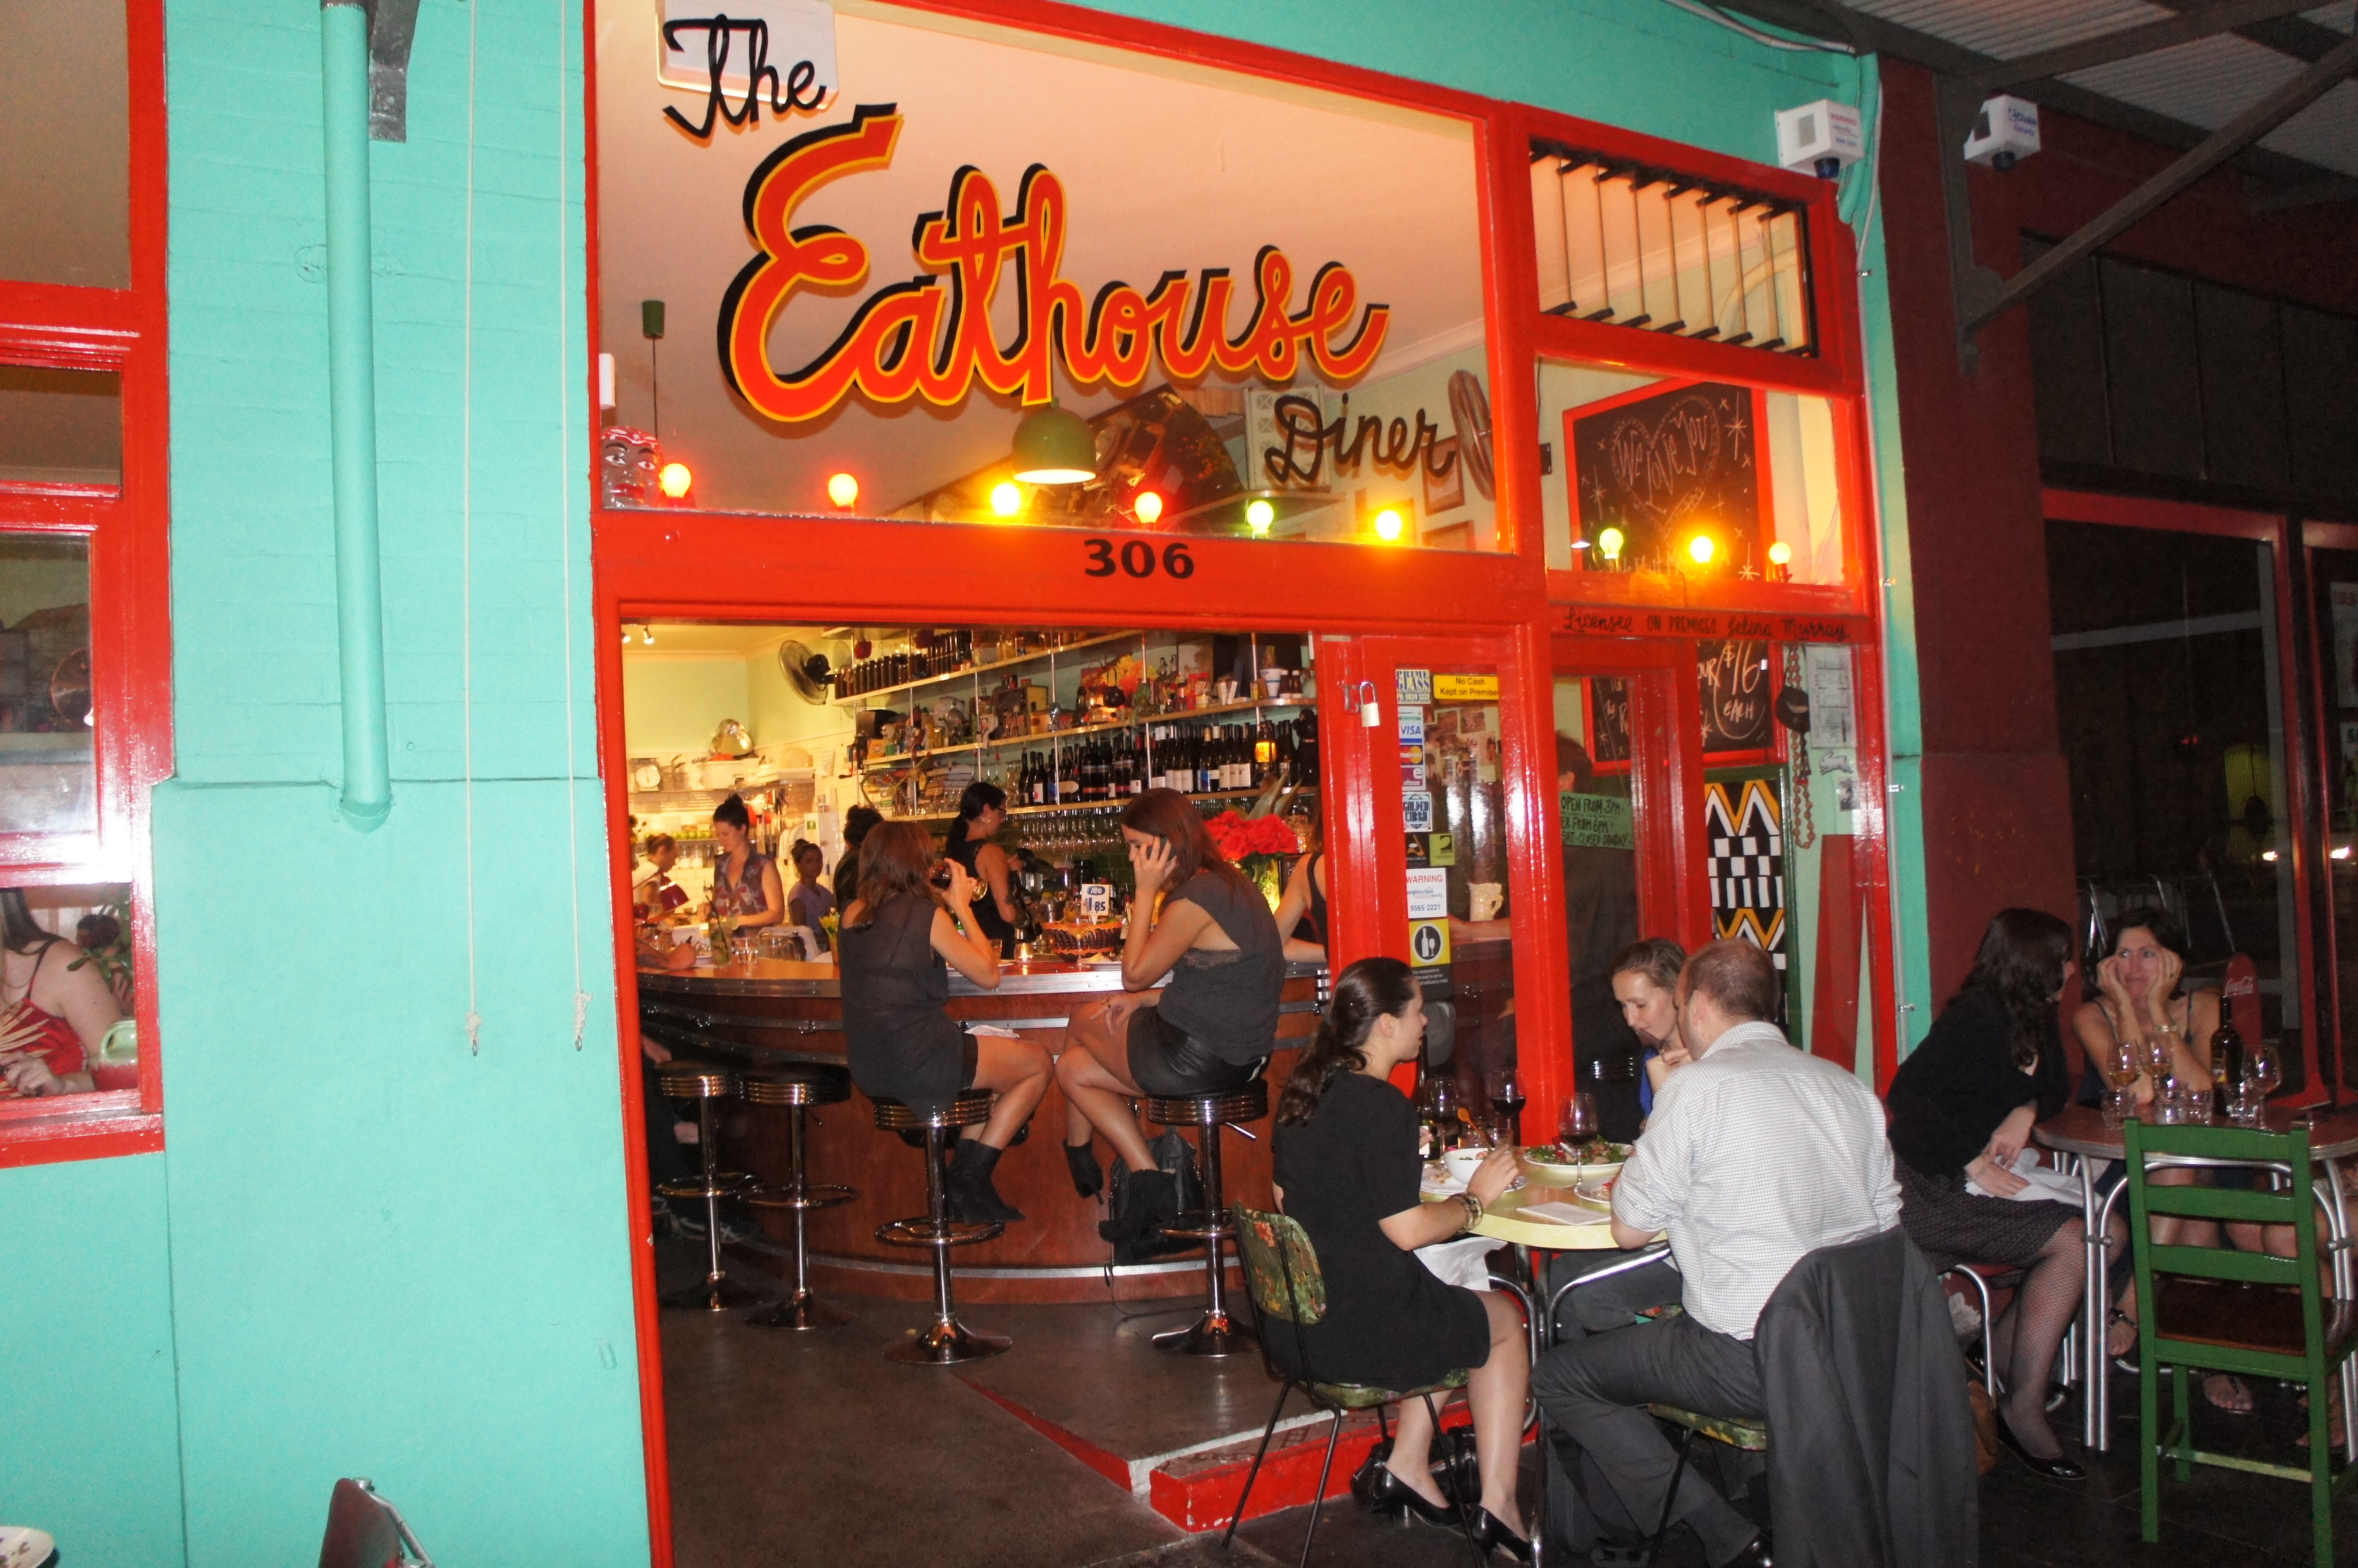 The Eathouse Diner